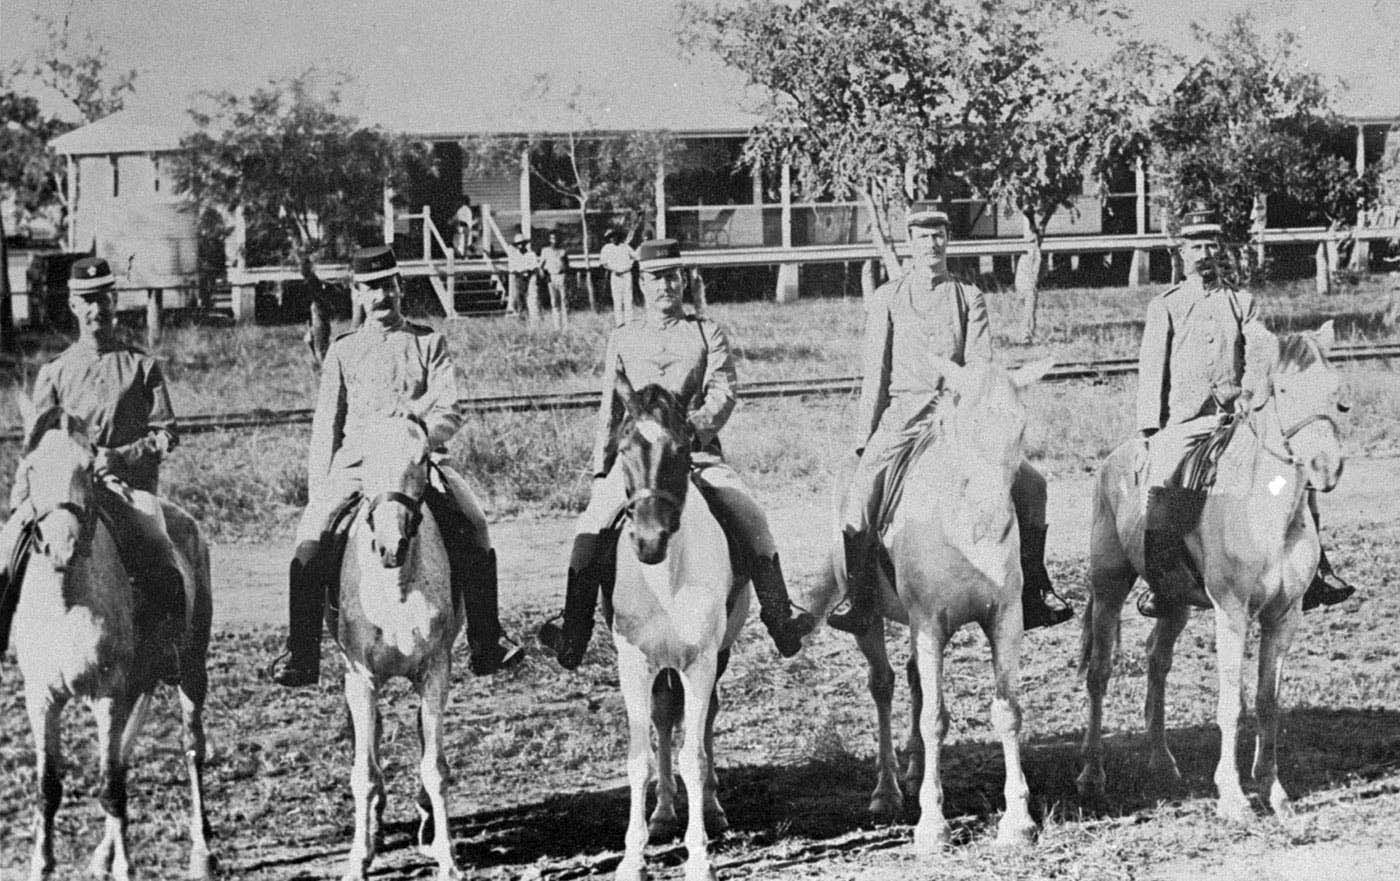 A group of five mounted police with a police quarters in the background.